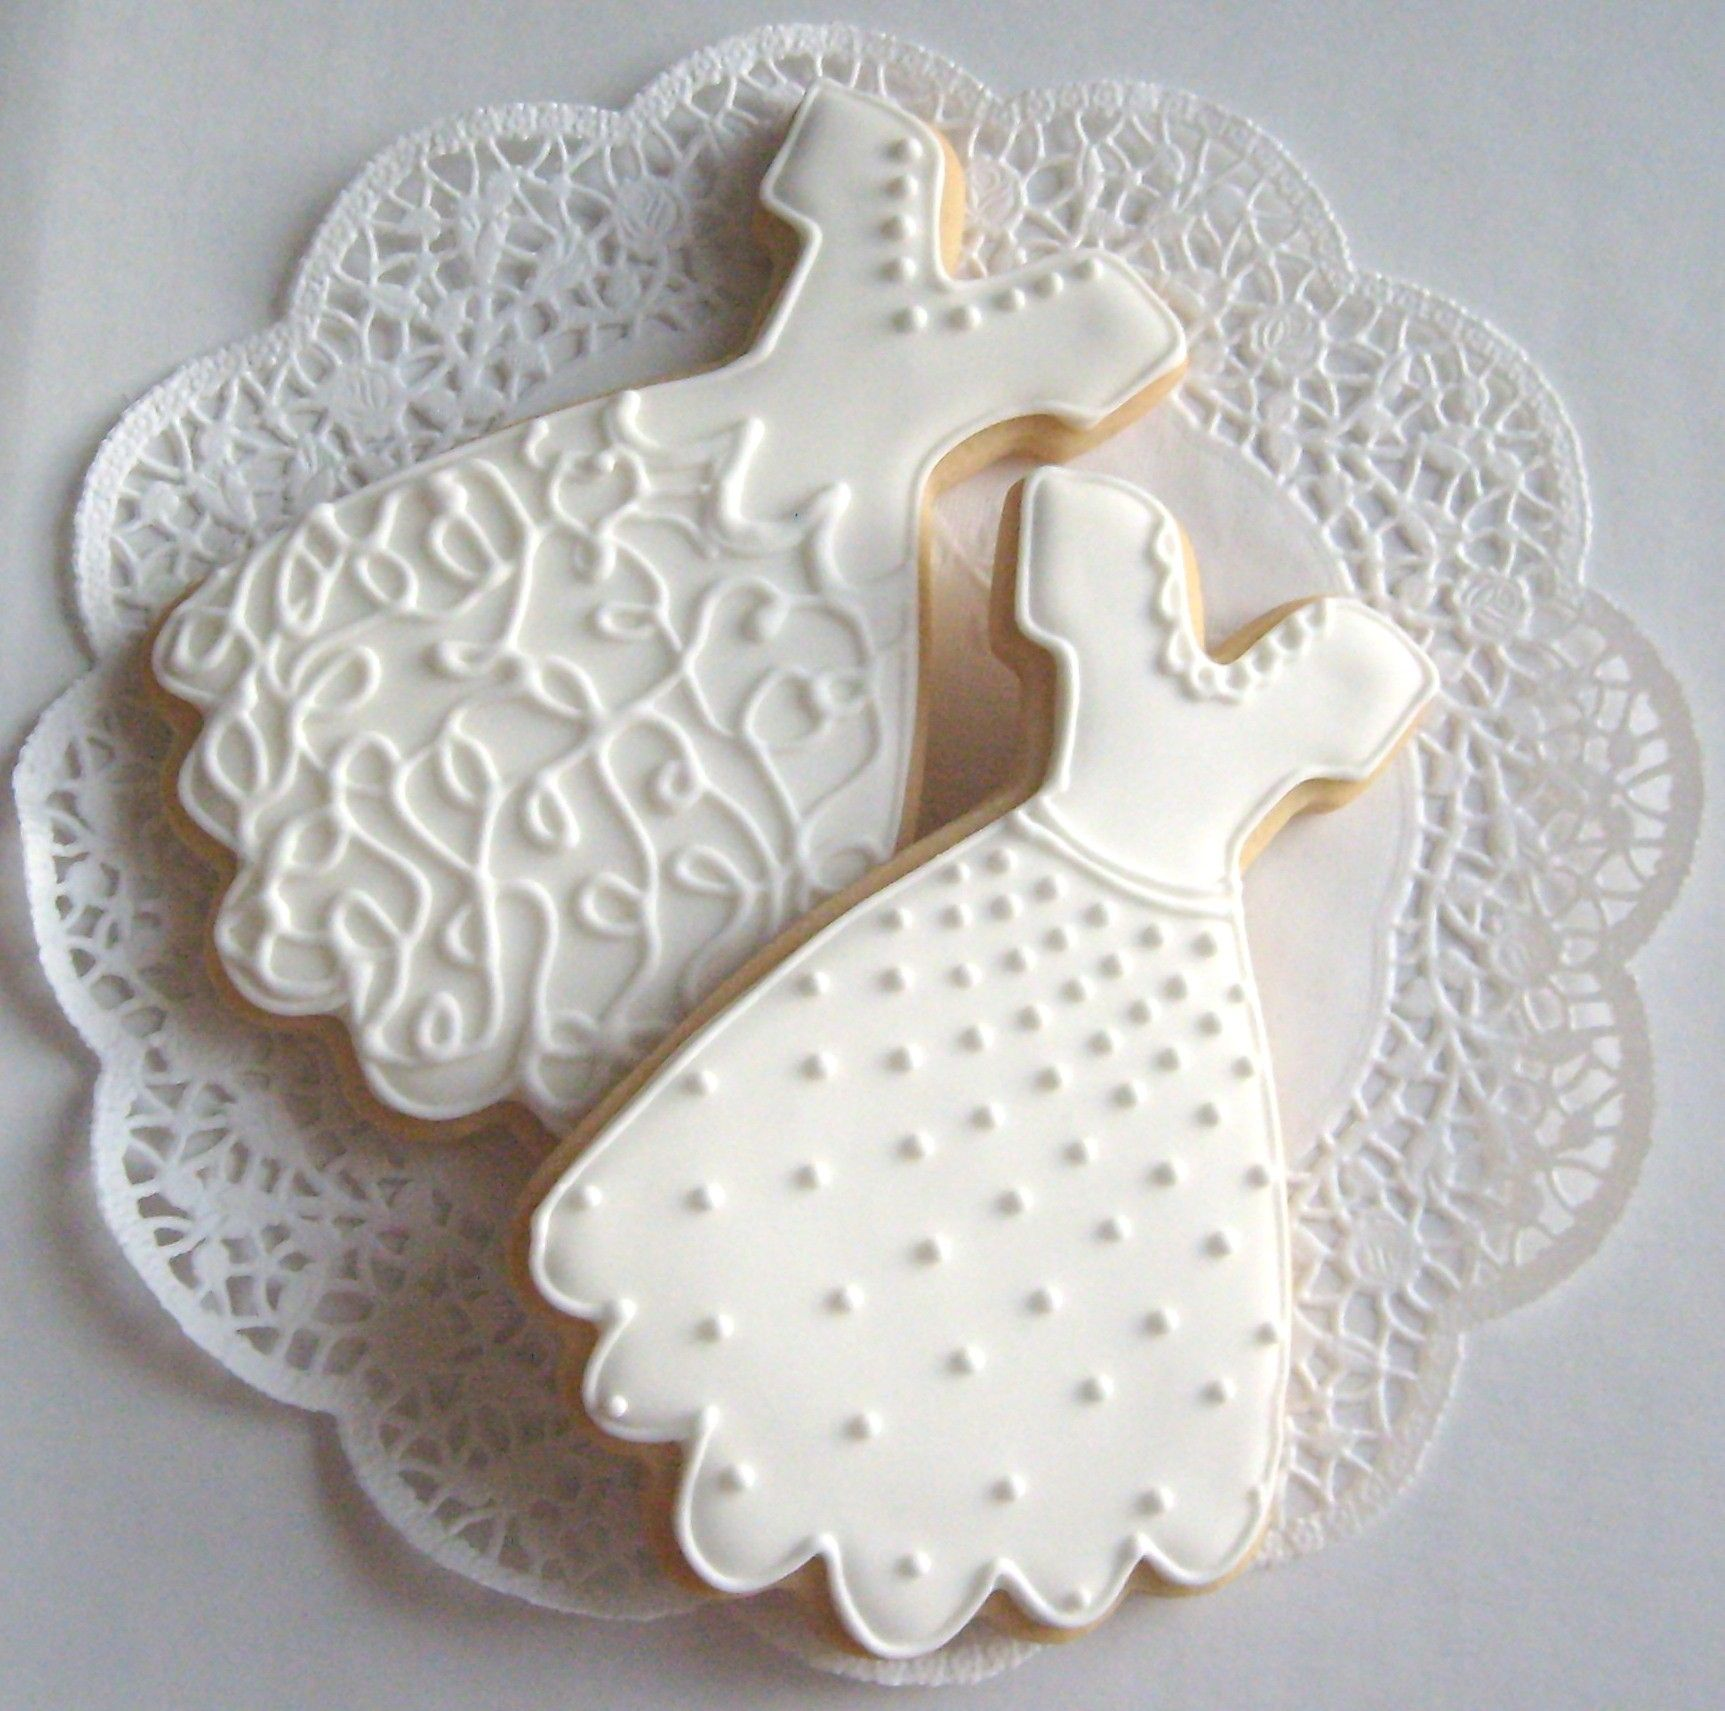 WEDDING DRESS COOKIE FAVORS - Decorated Wedding Dress cookie Favors ...